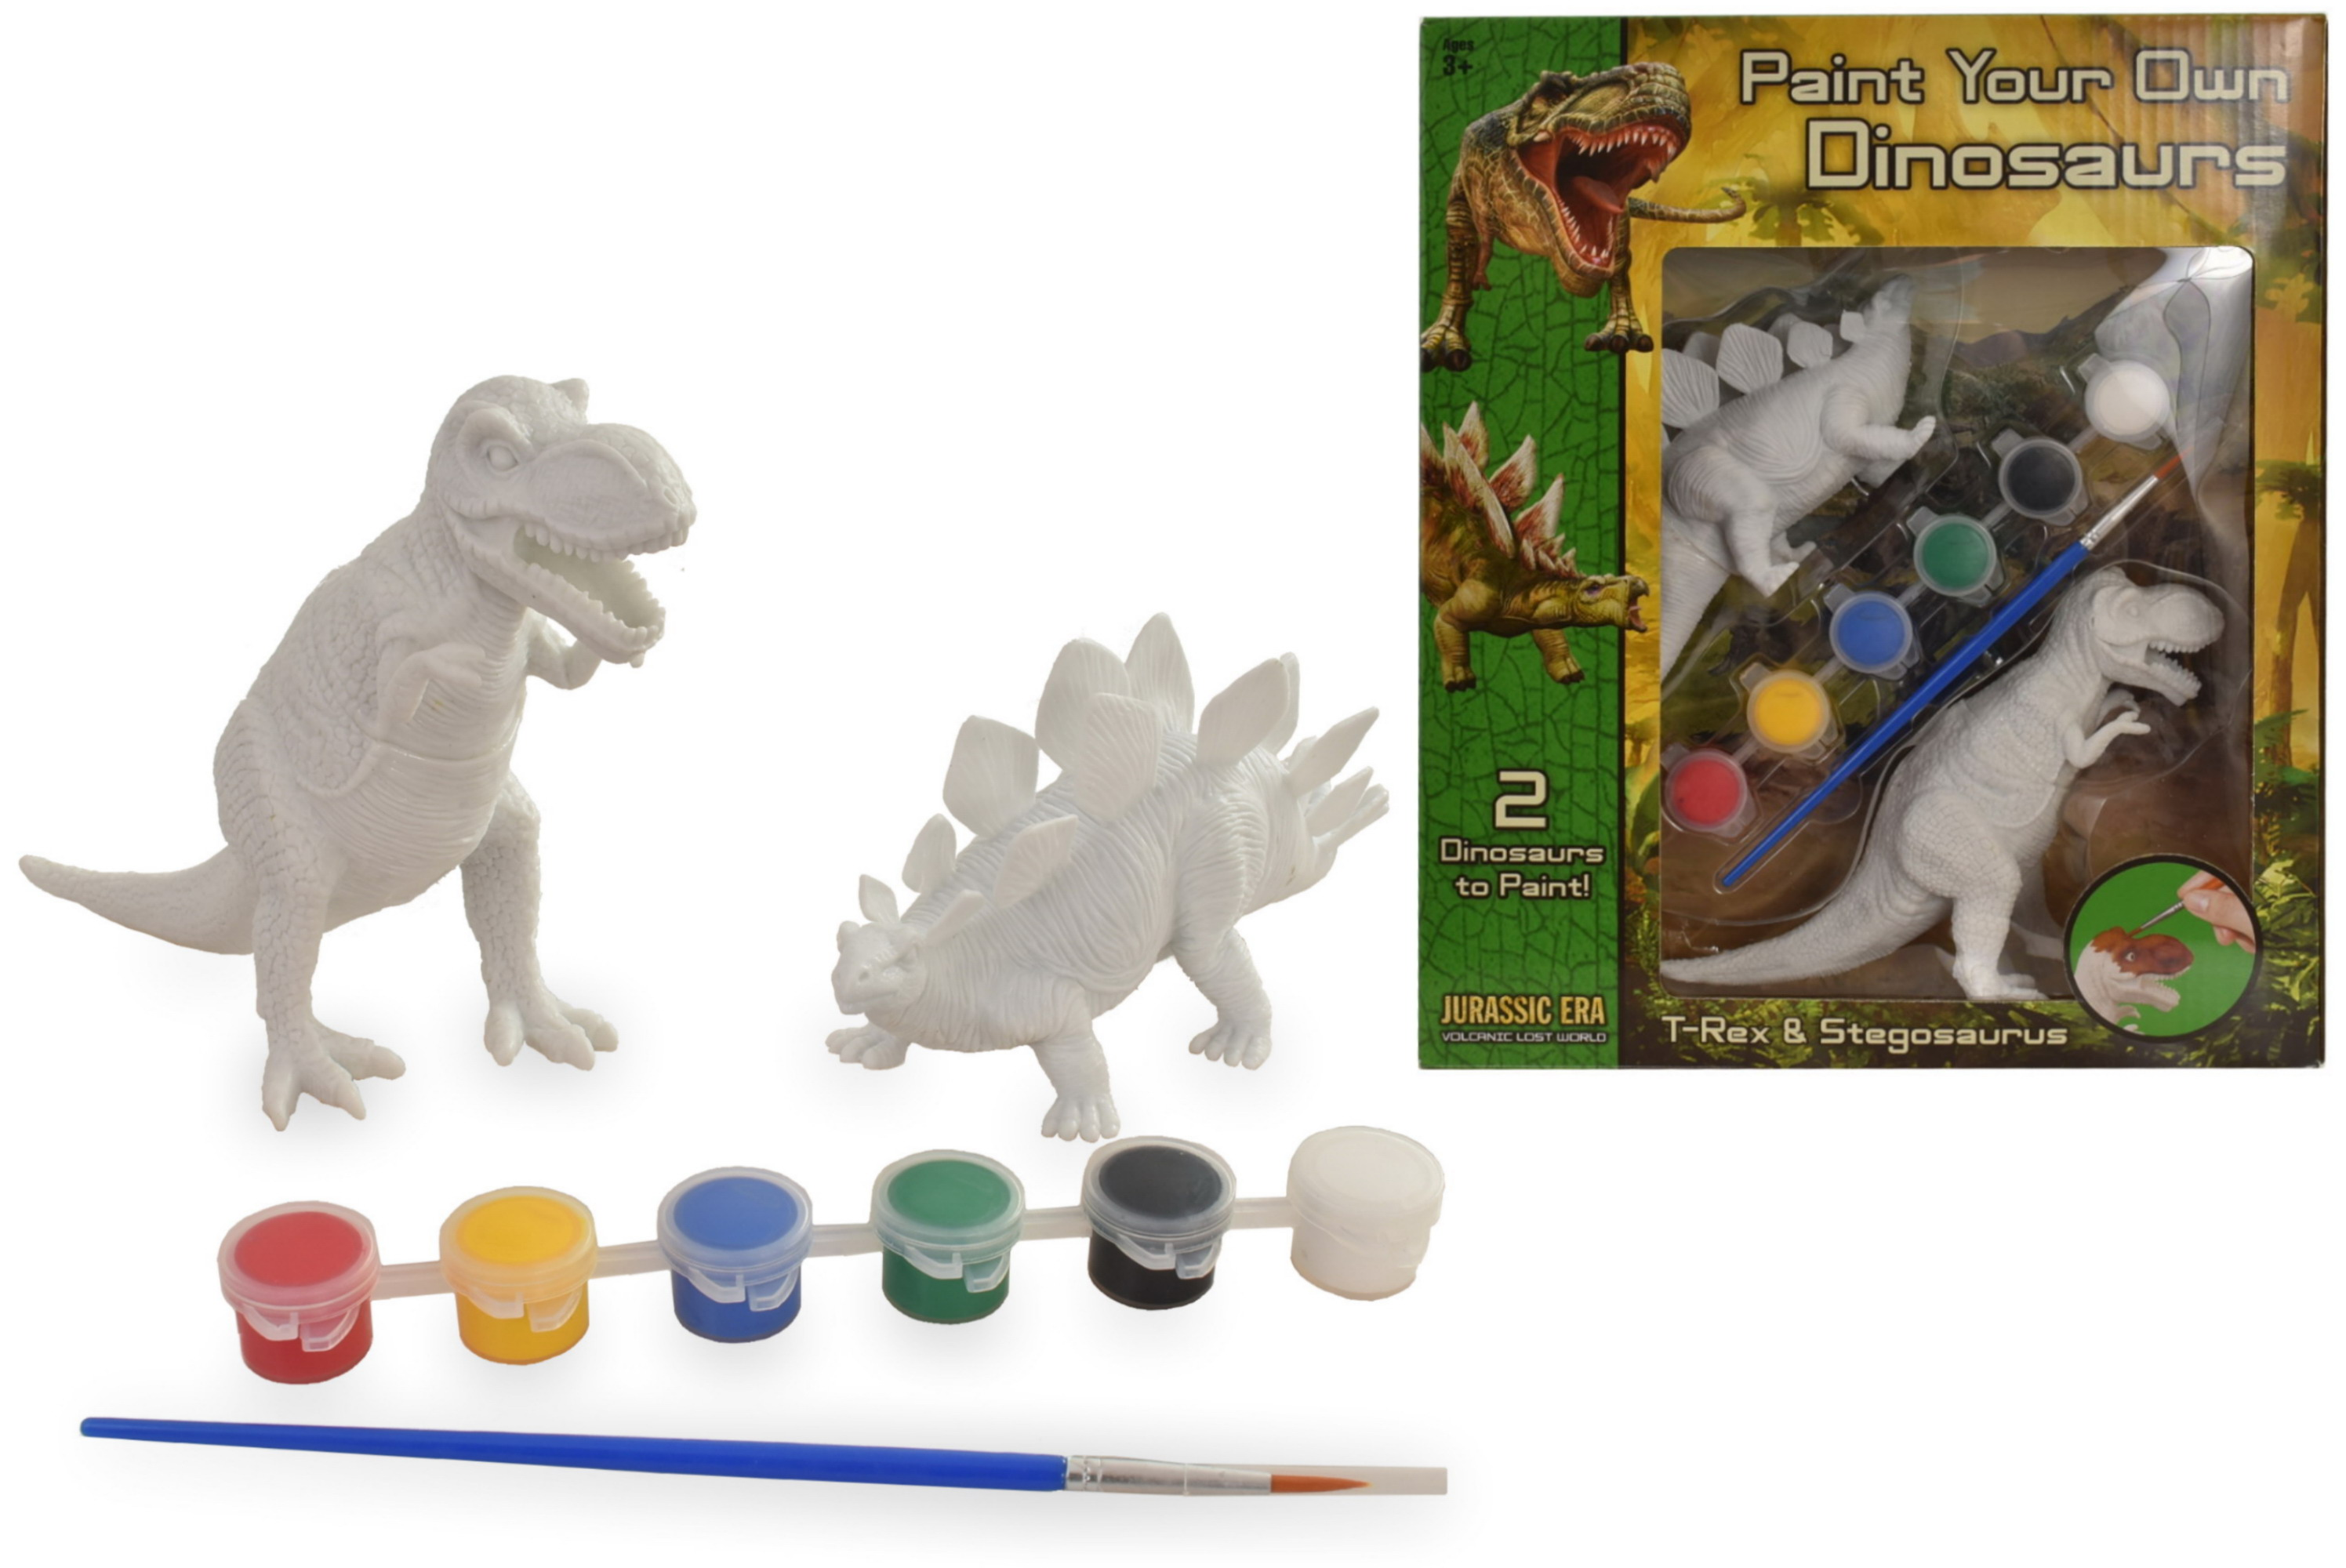 2pc Dinosaur Painting Set In Wbx